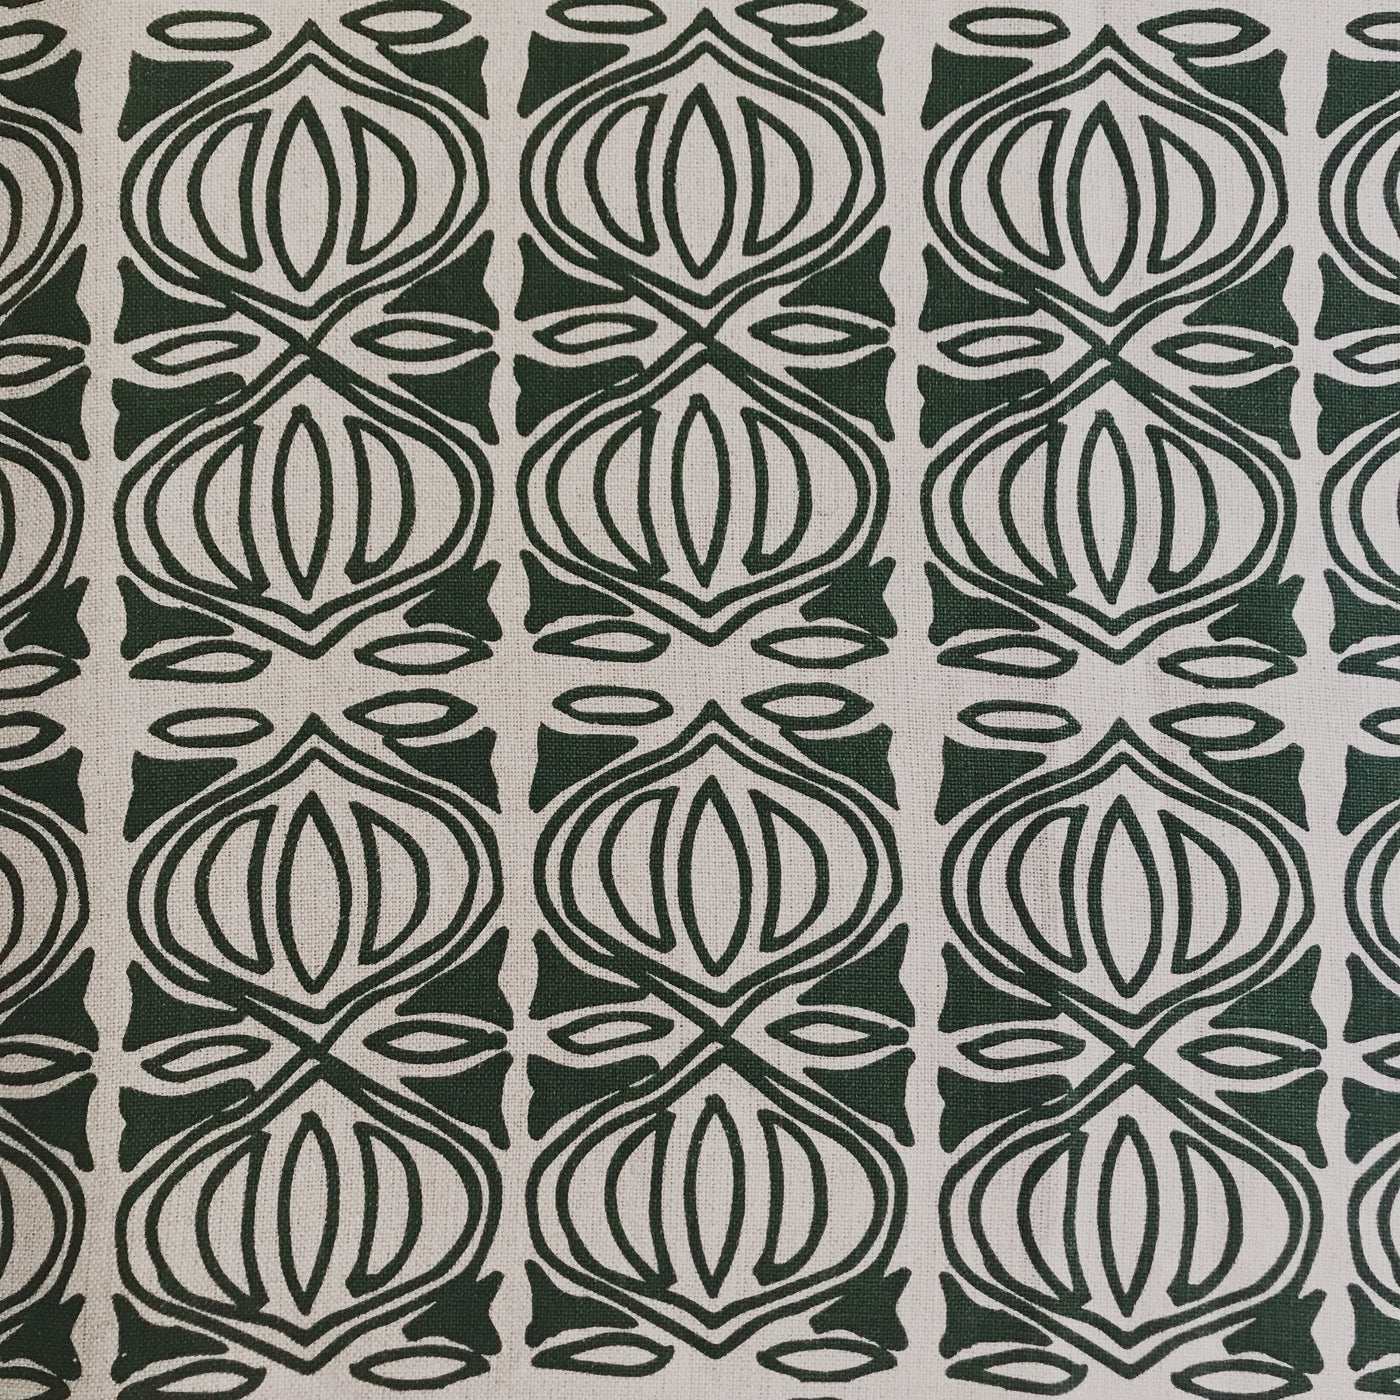 Holiday Fabric Emerald on Natural greige textiles